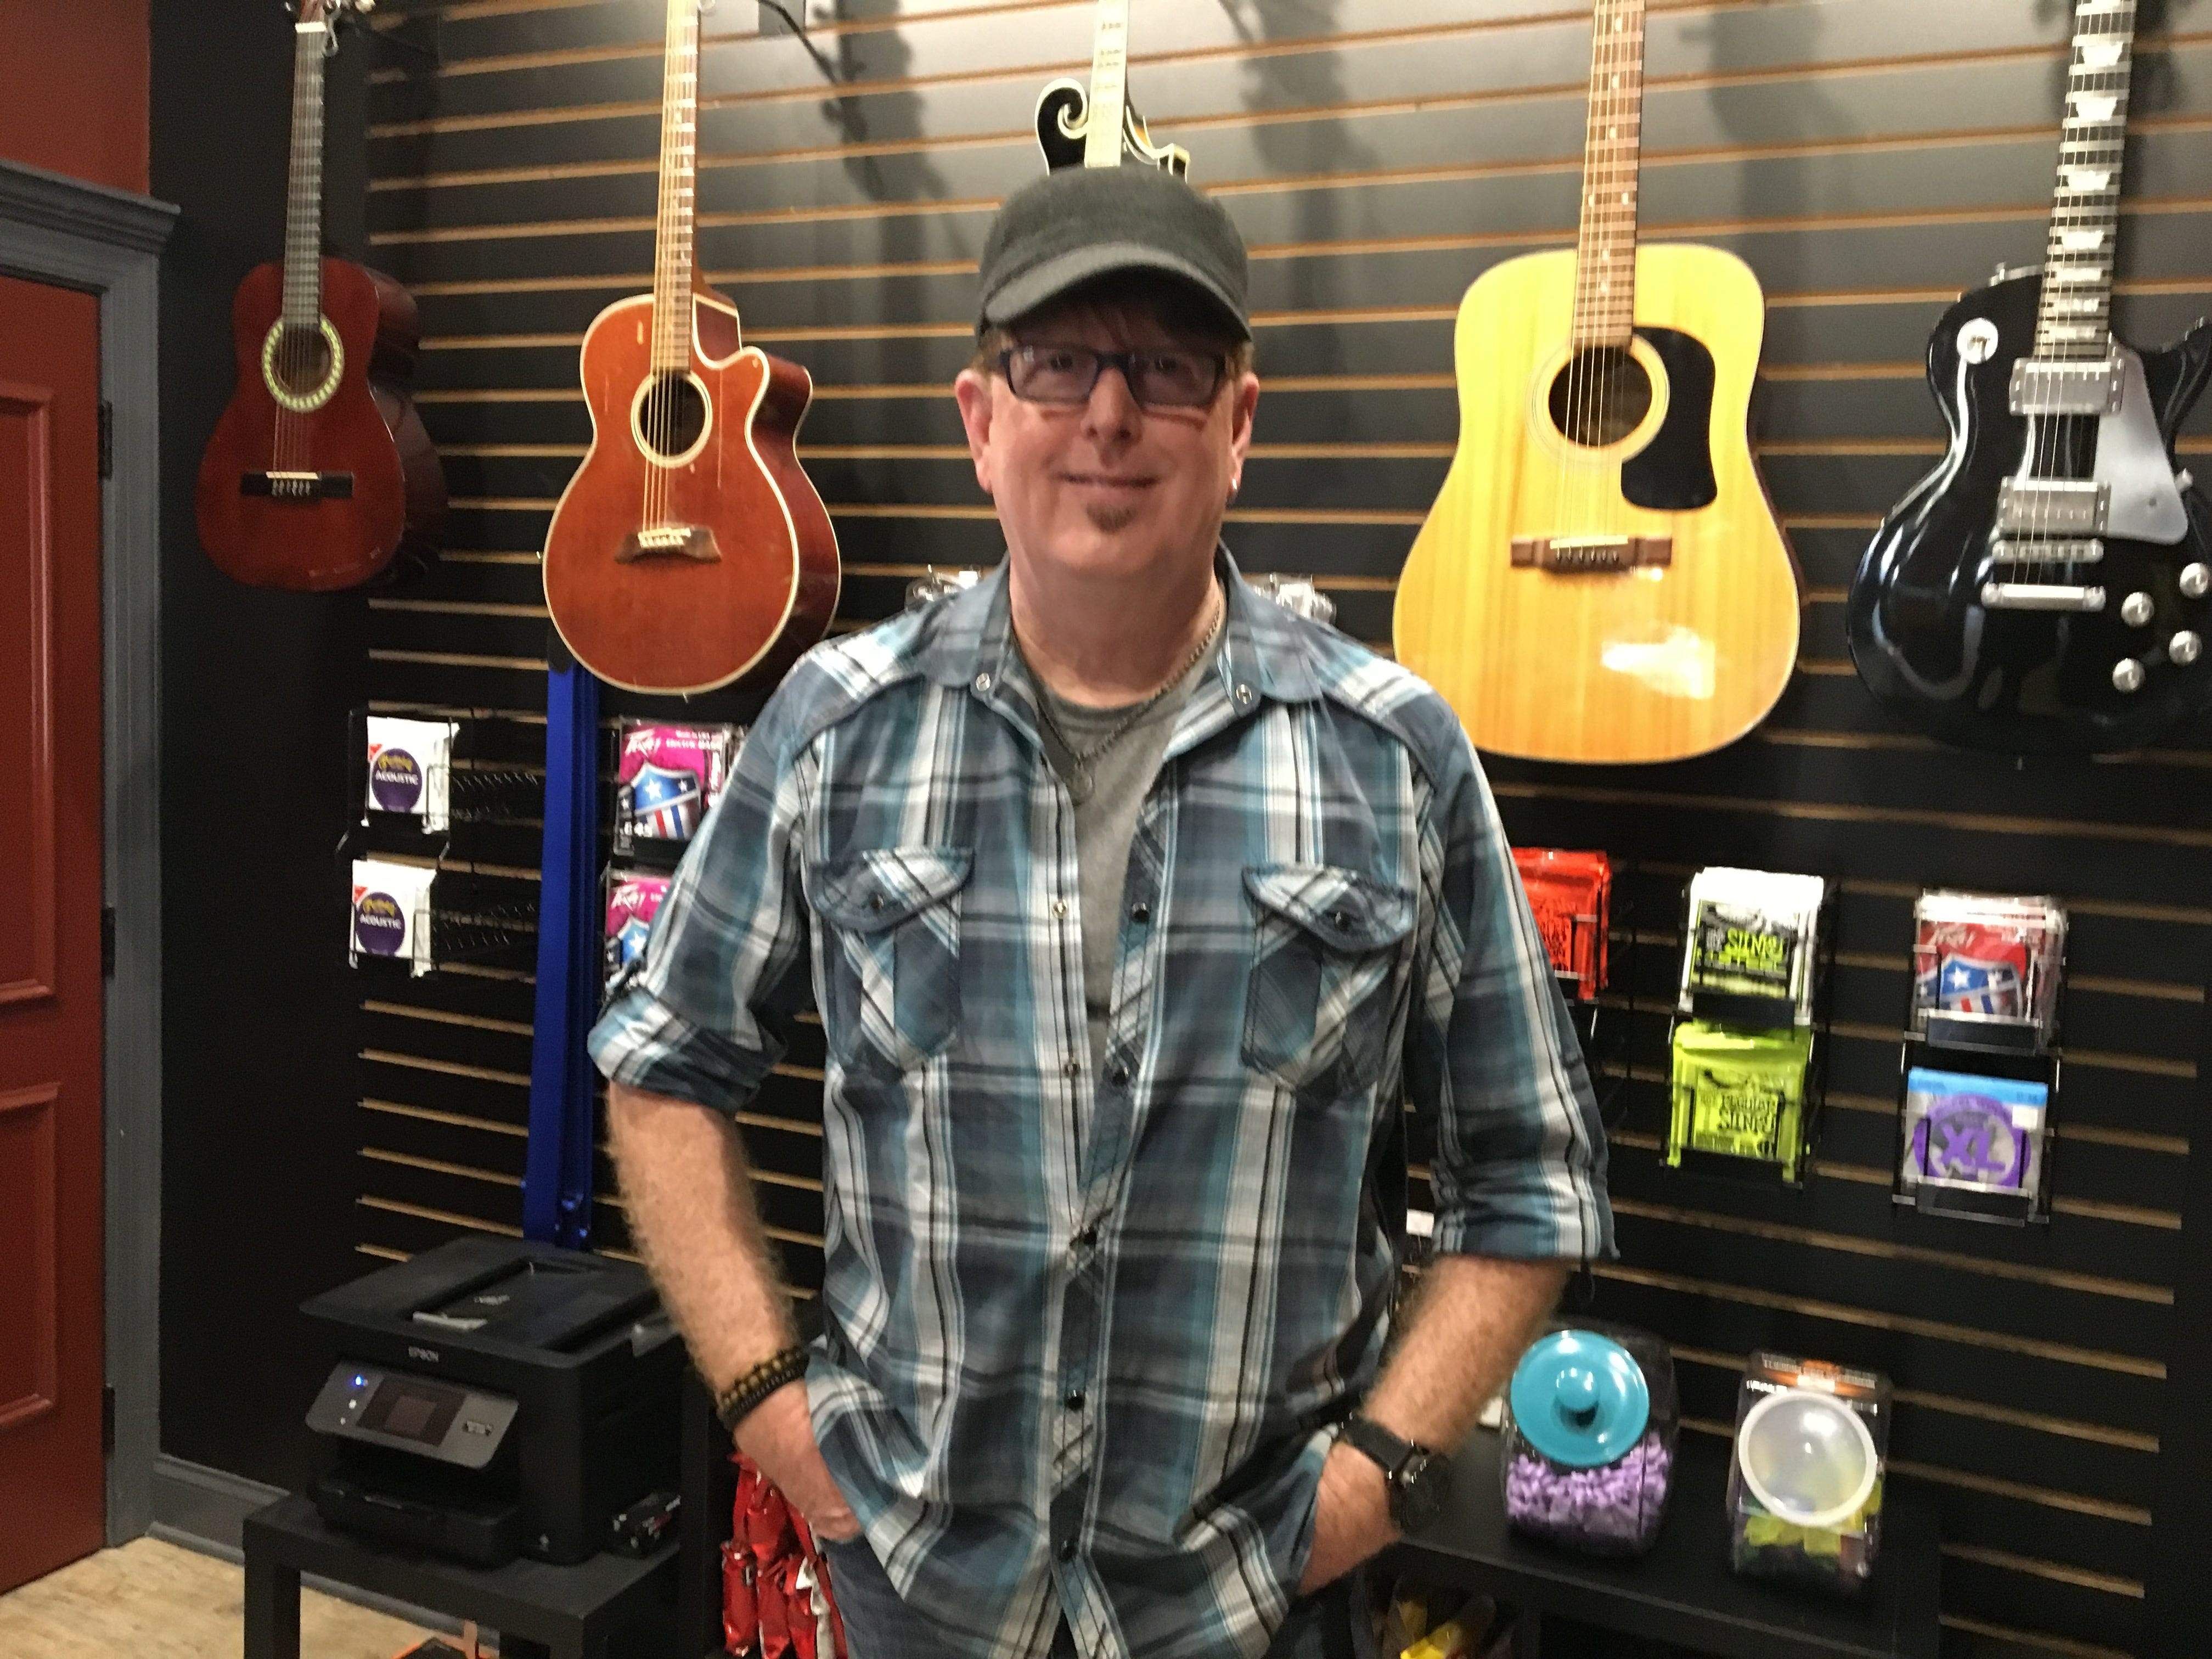 Keith Ridenour opened Ridenour Rehearsal Studios, 1203 Park Ave. in Murfreesboro. The 5,600-square-foot facililty offers everything bands need to practice.